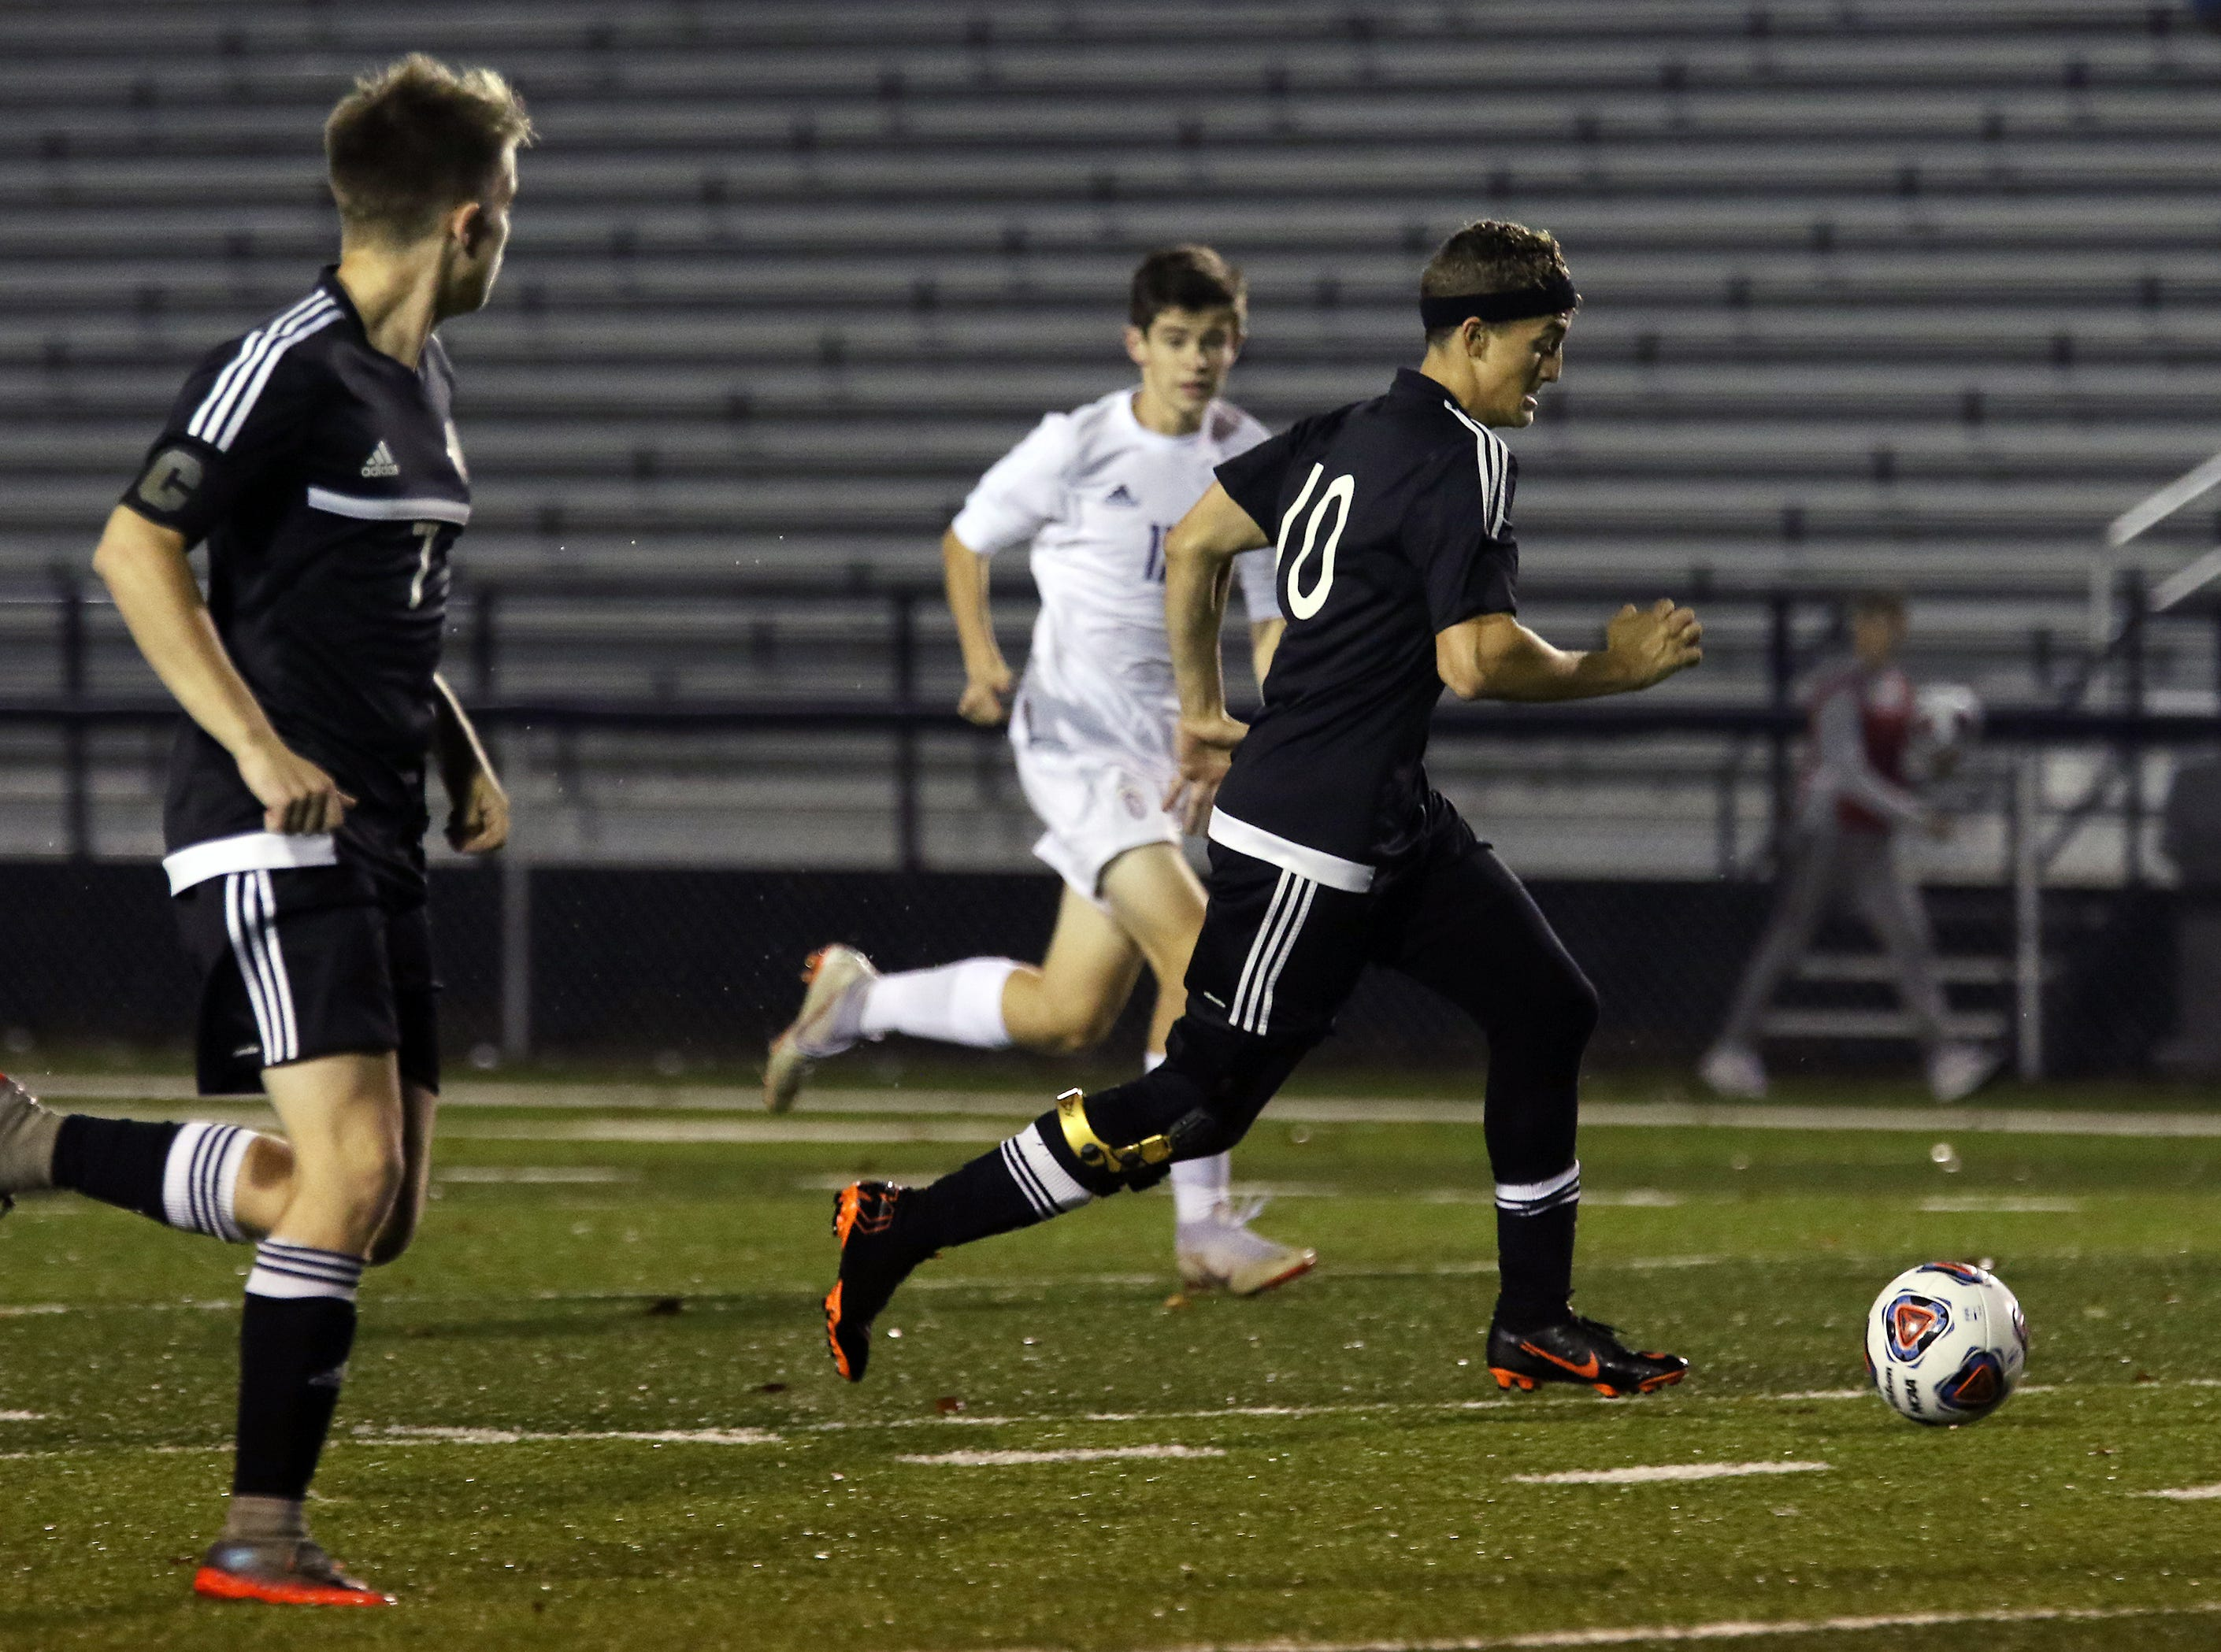 River View's Andrew Martin moves with the ball against DeSales.